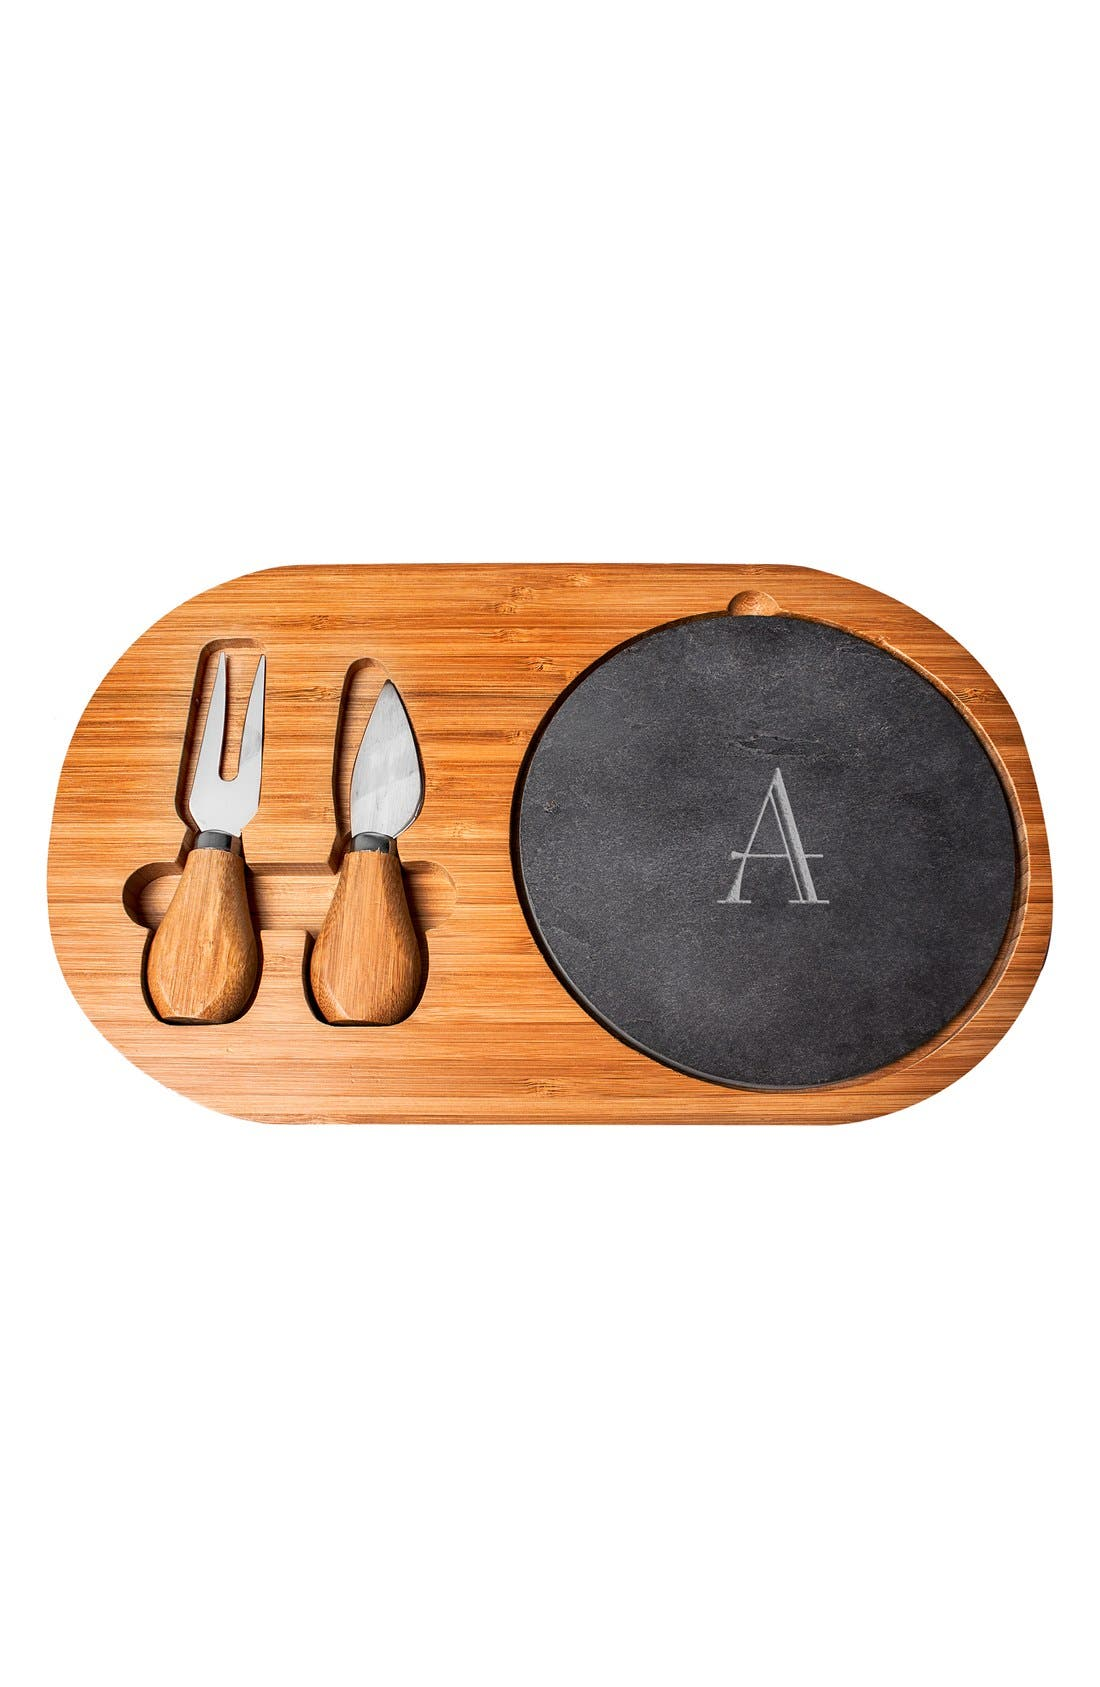 Cathy's Concepts Monogram Cheese Board & Utensils